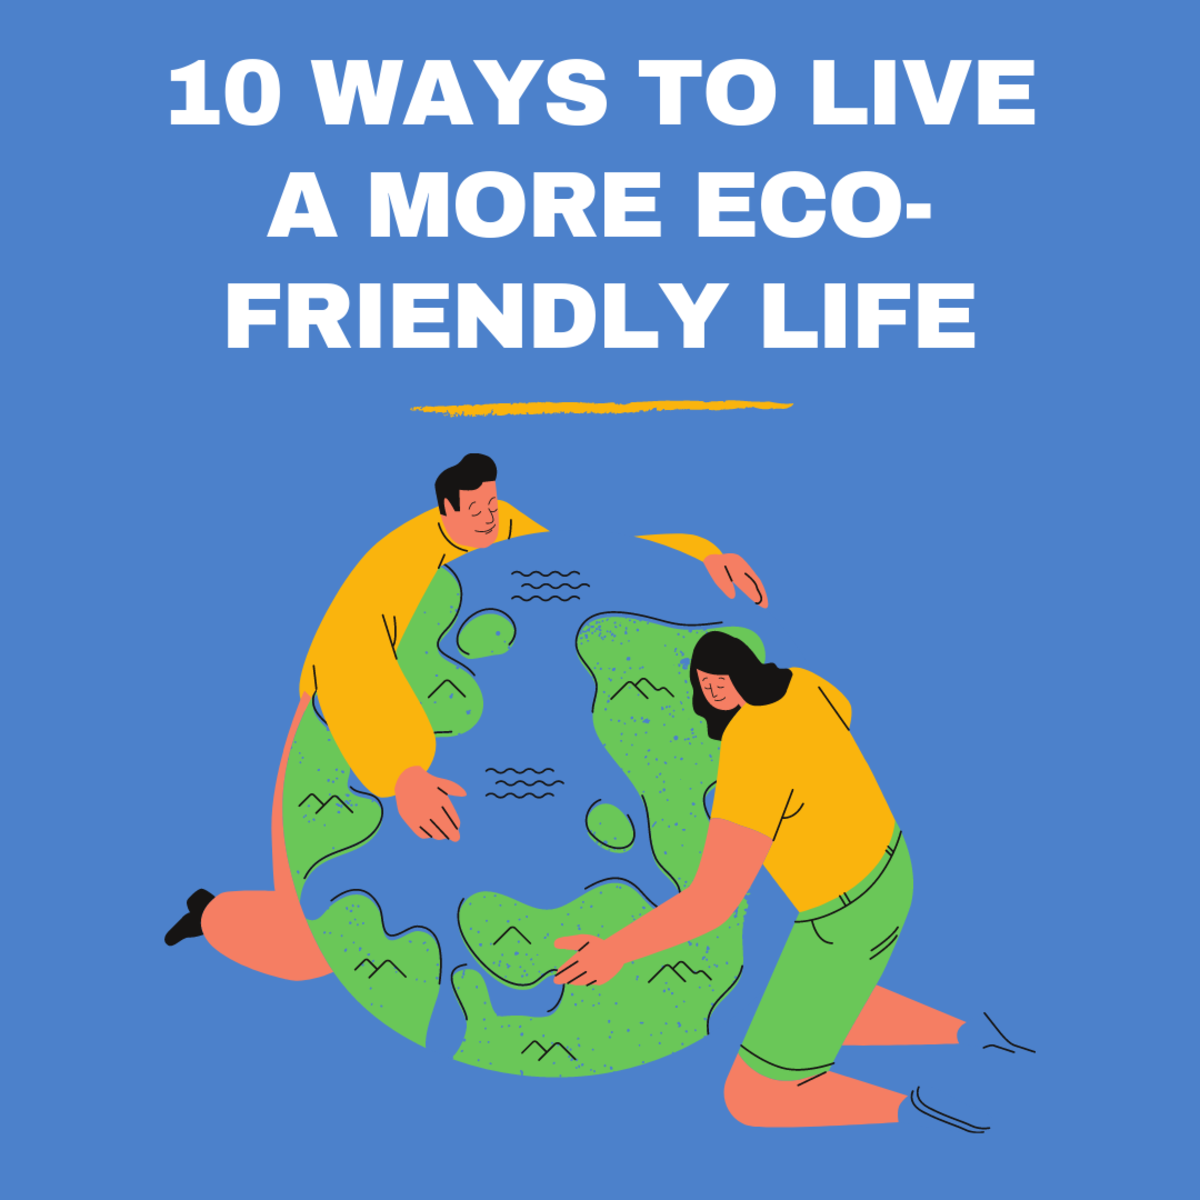 10 Ways to Be More Eco-Friendly (How to Go Green)